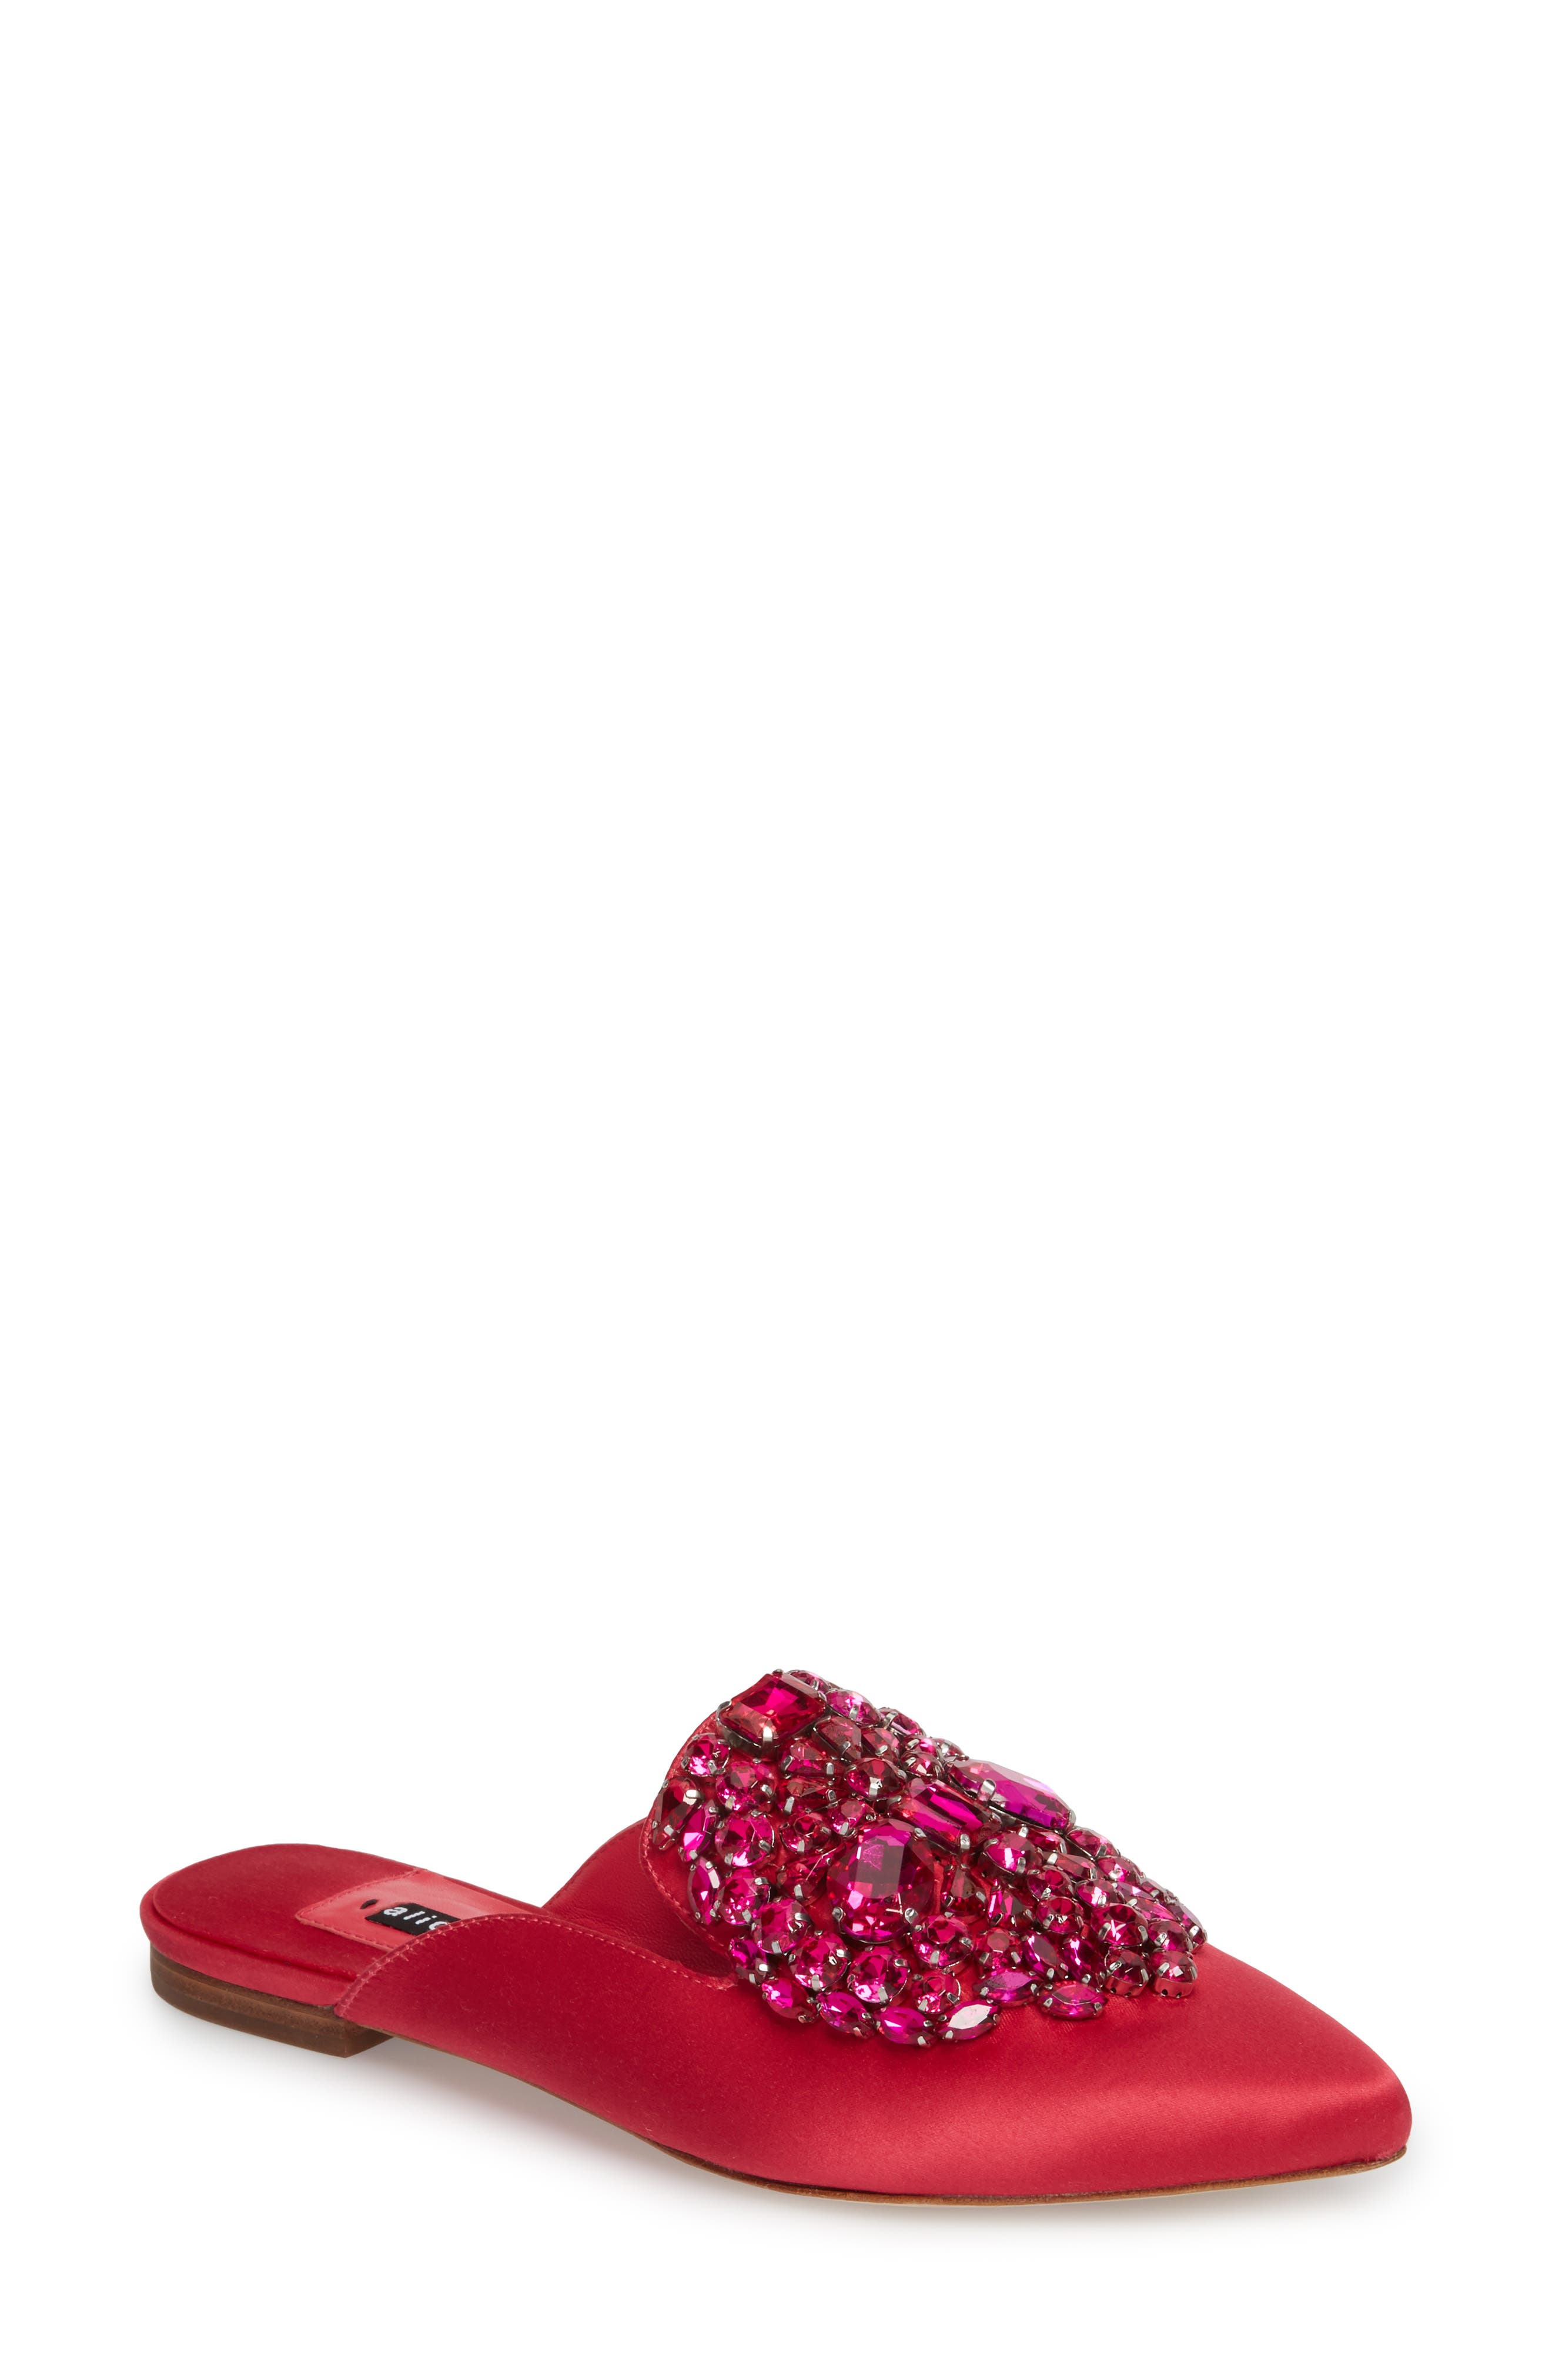 Lilly Crystal Embellished Loafer Mule,                             Main thumbnail 1, color,